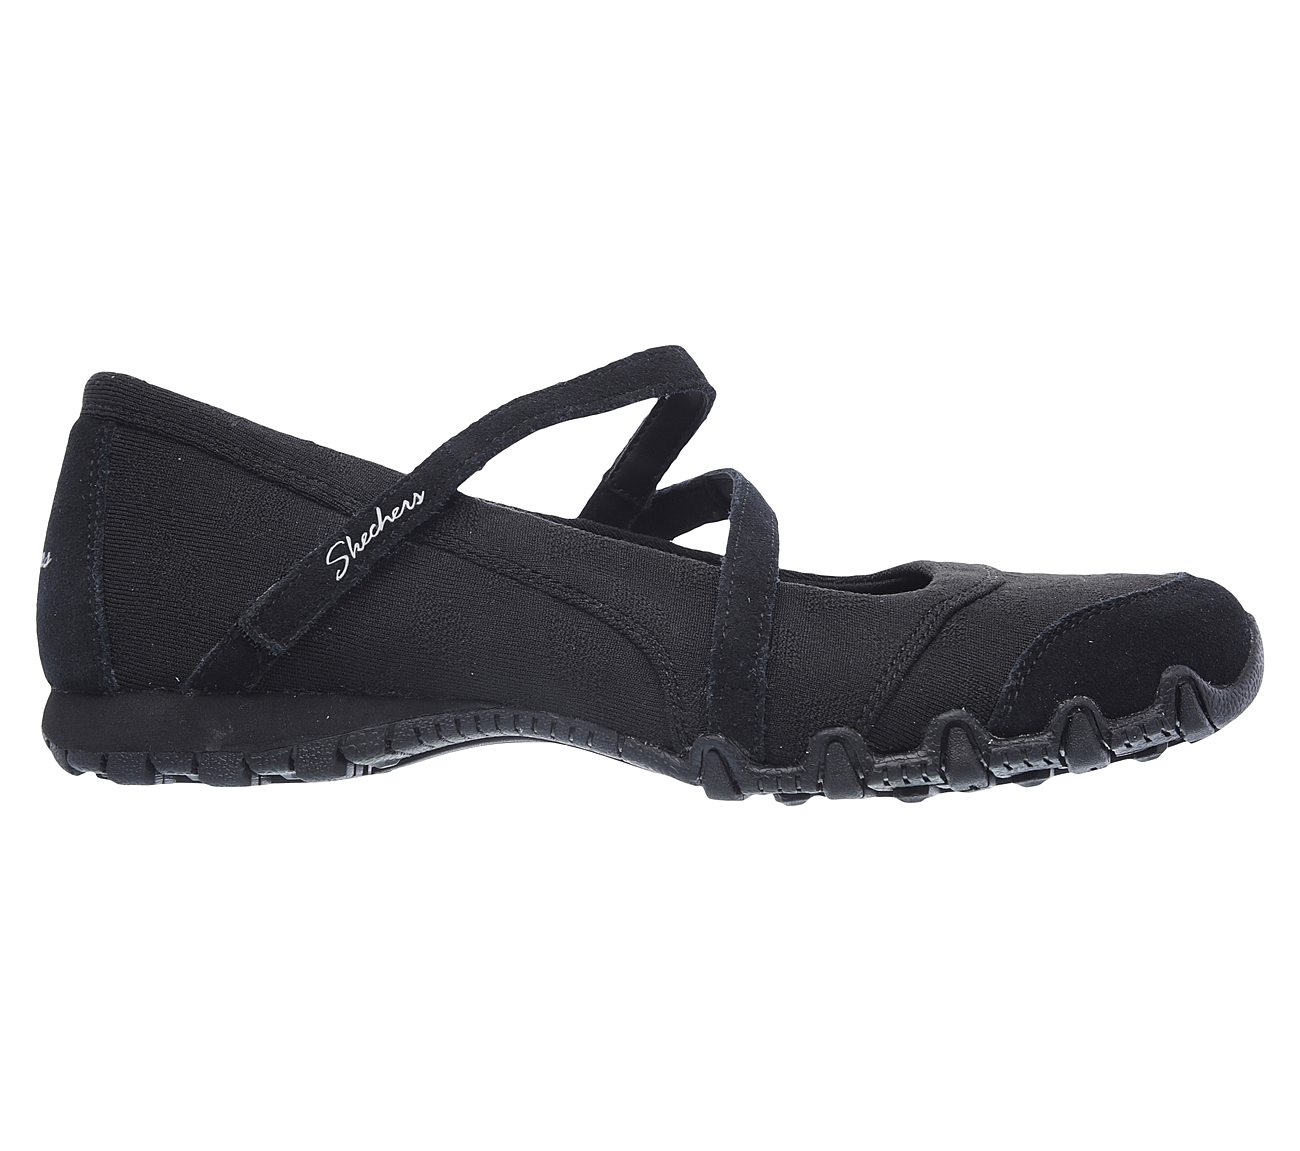 Skechers Relaxed Fit Bikers Get-Up Mary Jane (Women's) TaneWb